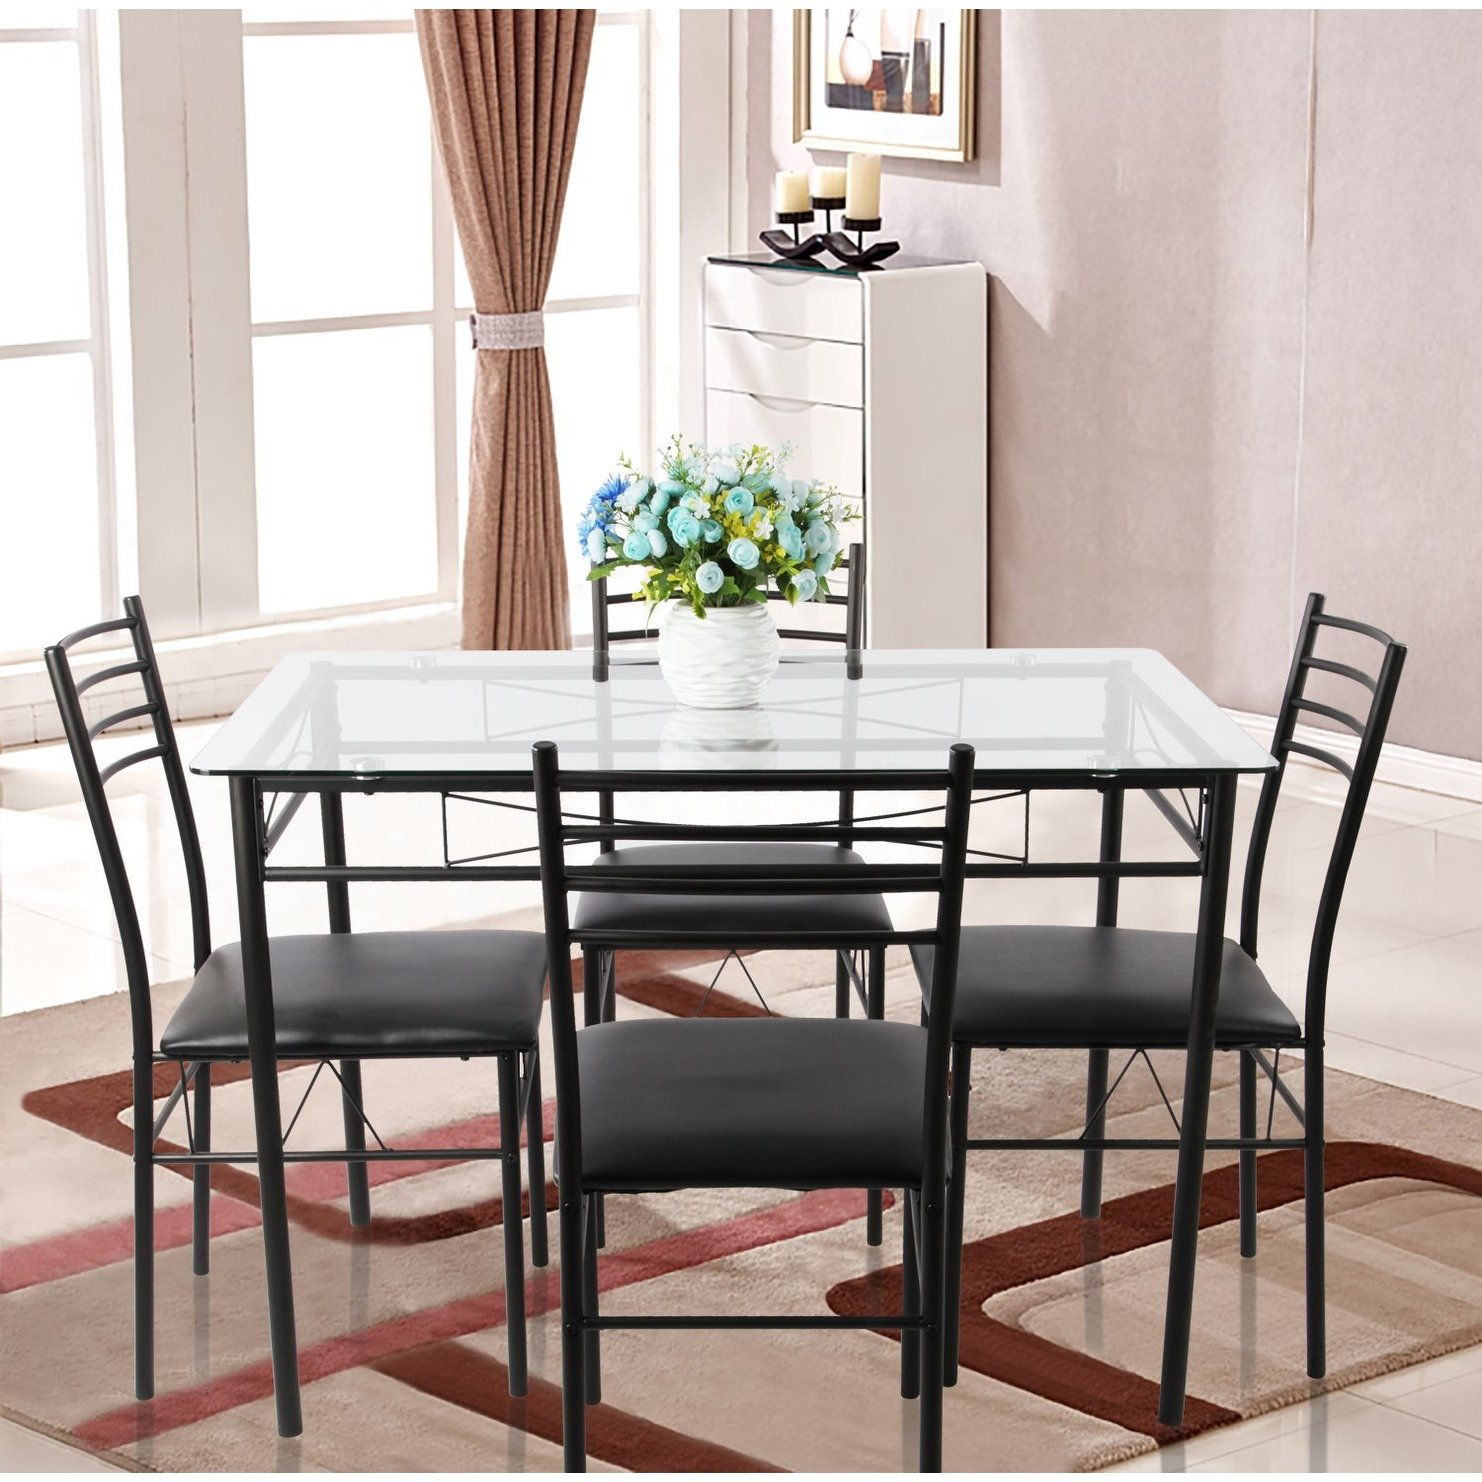 Shop Vecelo Glass Dining Table Sets With 4 Chairs Kitchen Table Sets